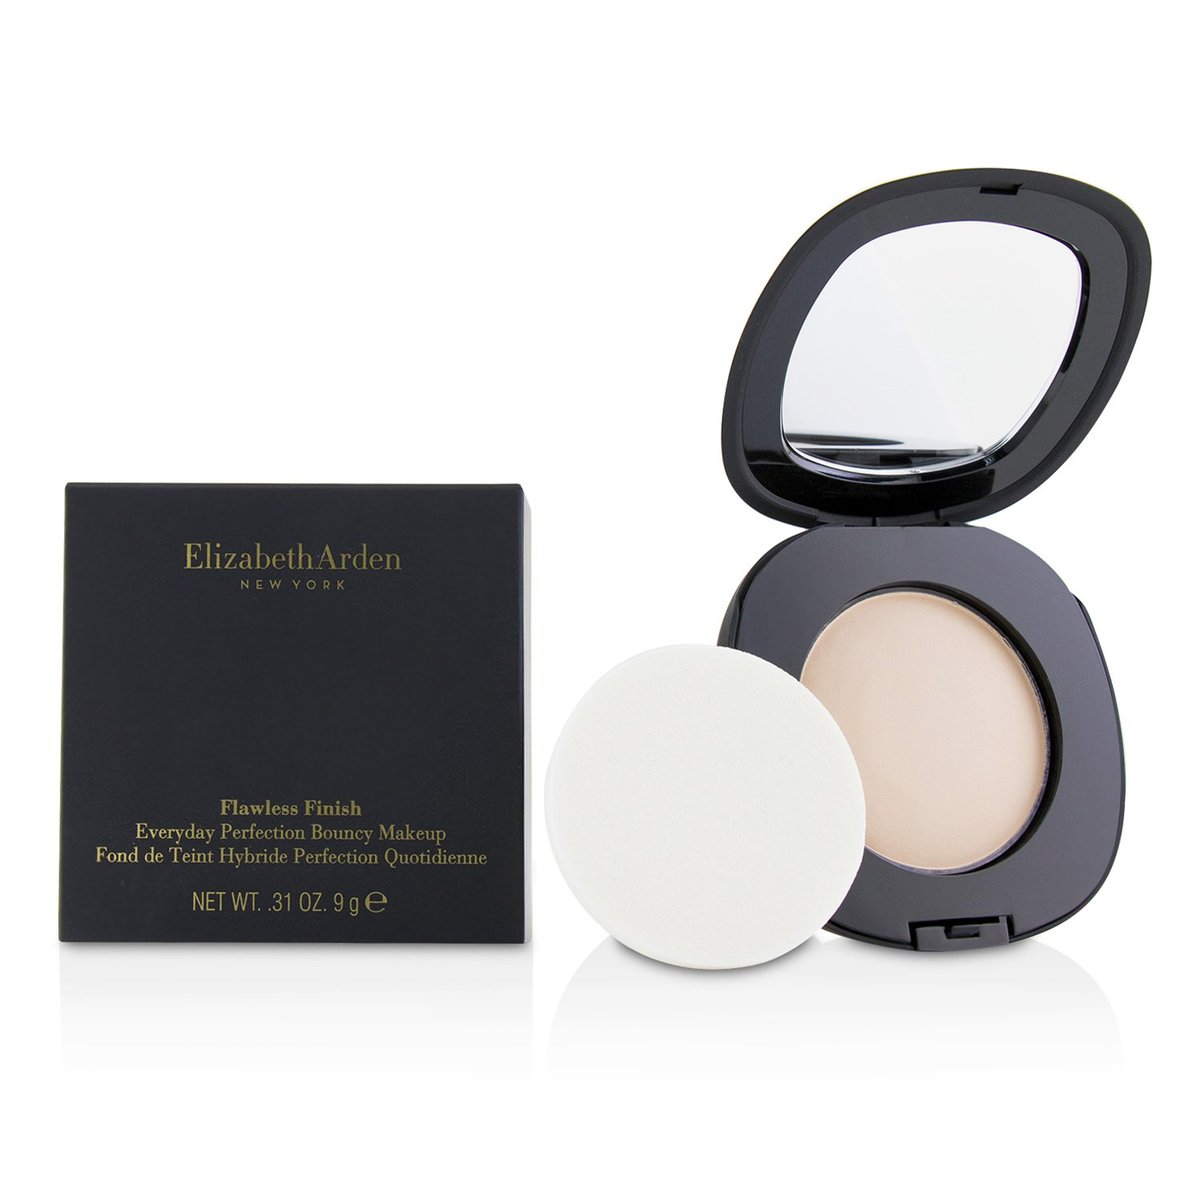 Flawless Finish Everyday Perfection Bouncy Makeup - # 01 Porcelain  -[Parallel Import Product]